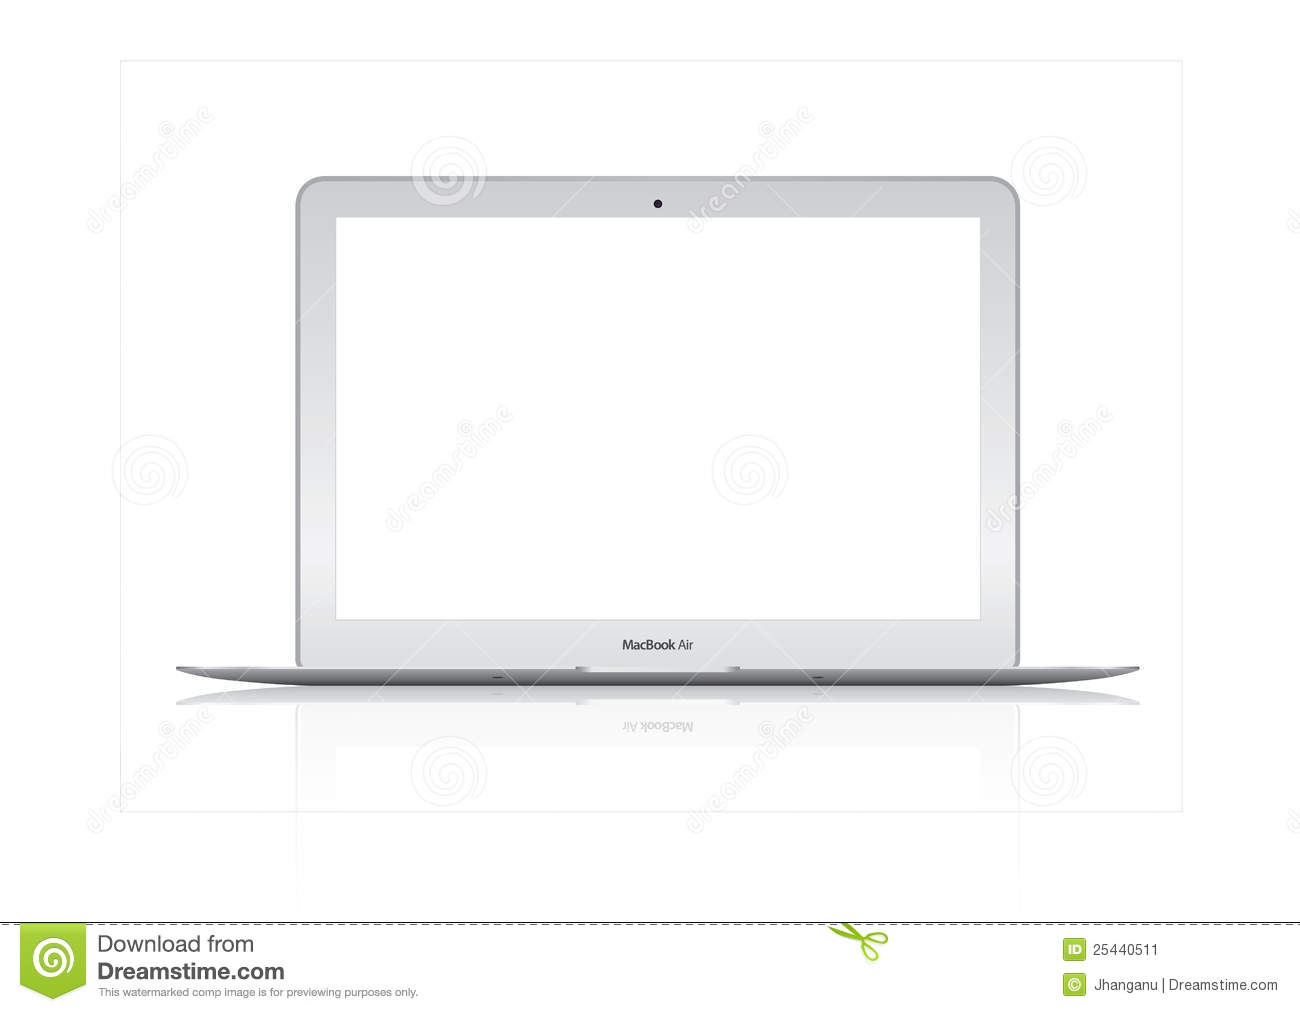 Illustration of New Apple Mac Book Air laptop